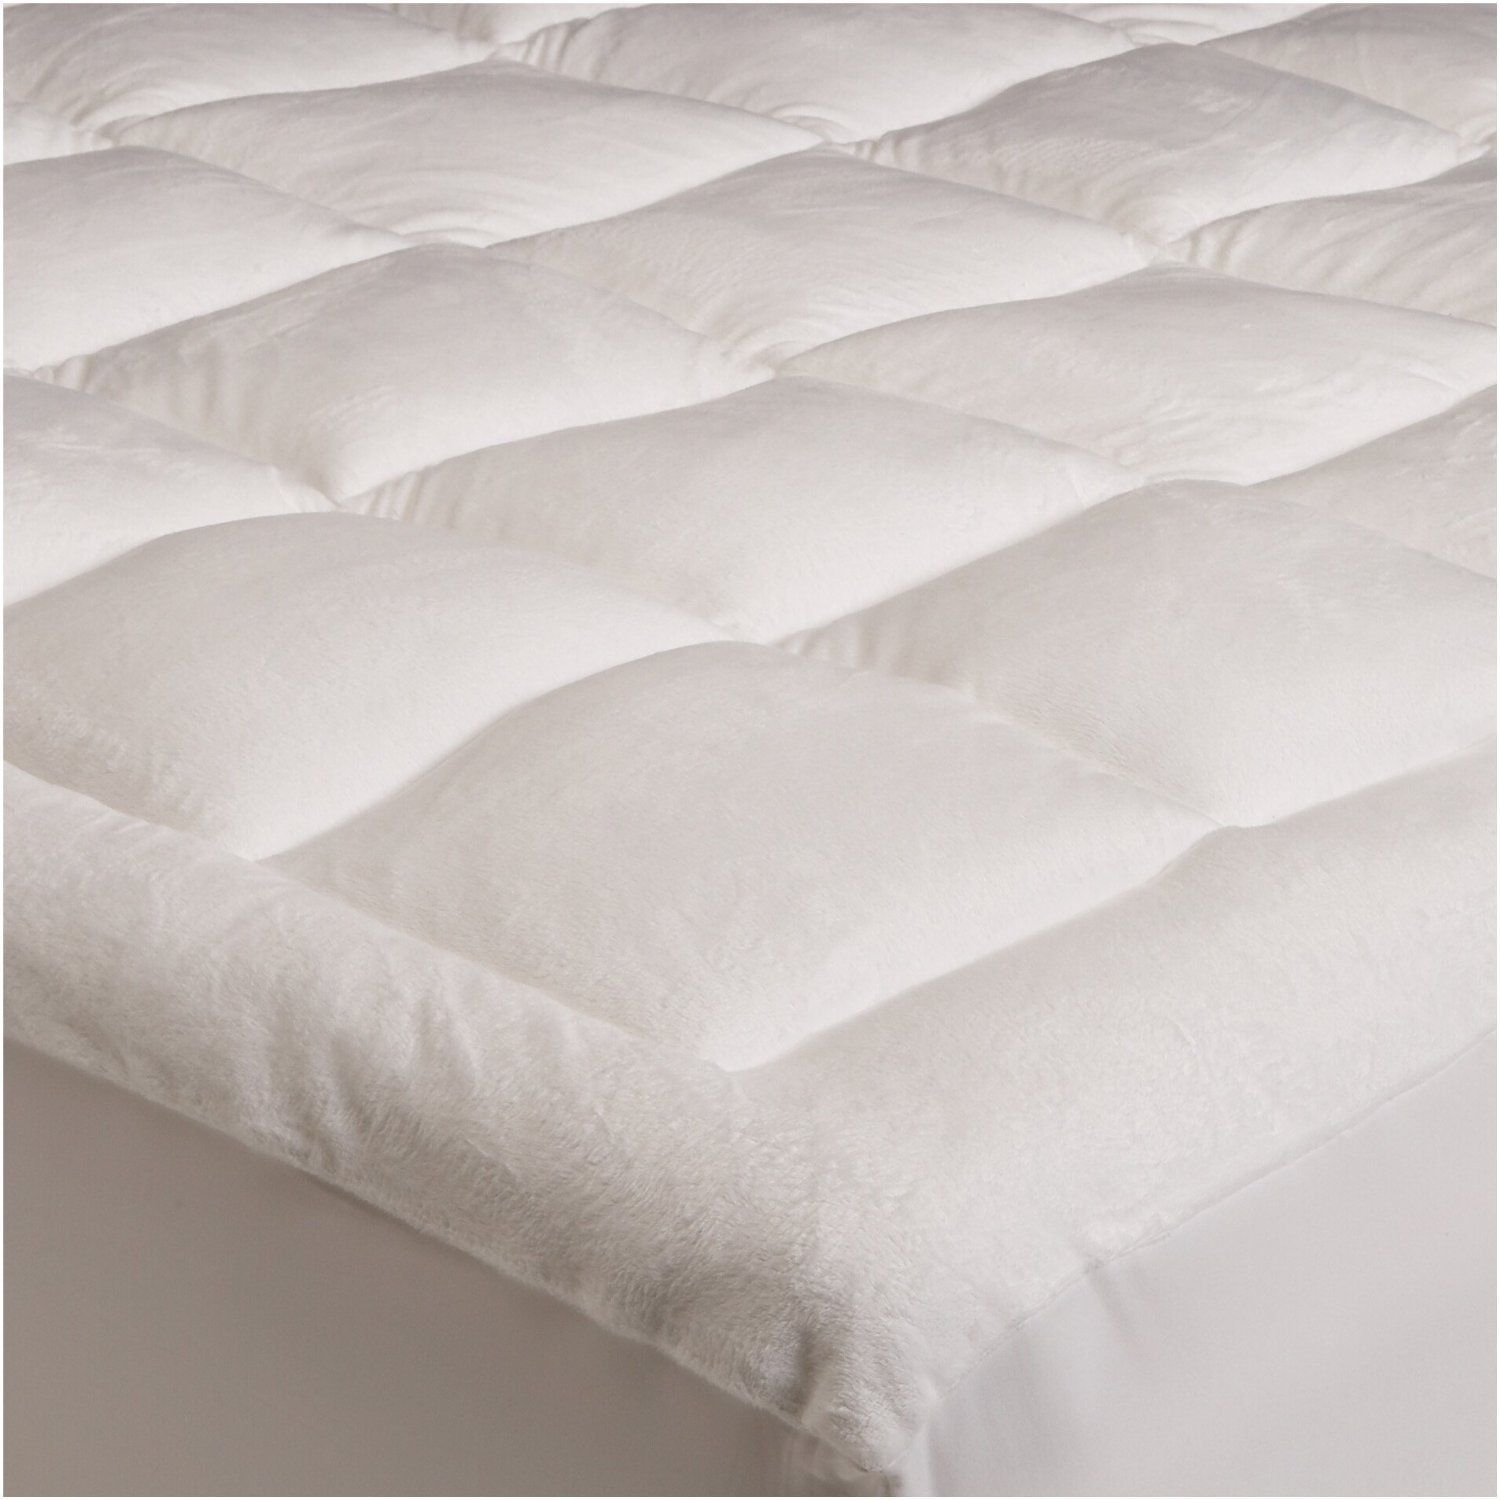 Mattress Pad Twin Size Microplush Topper Pillow Top Bed